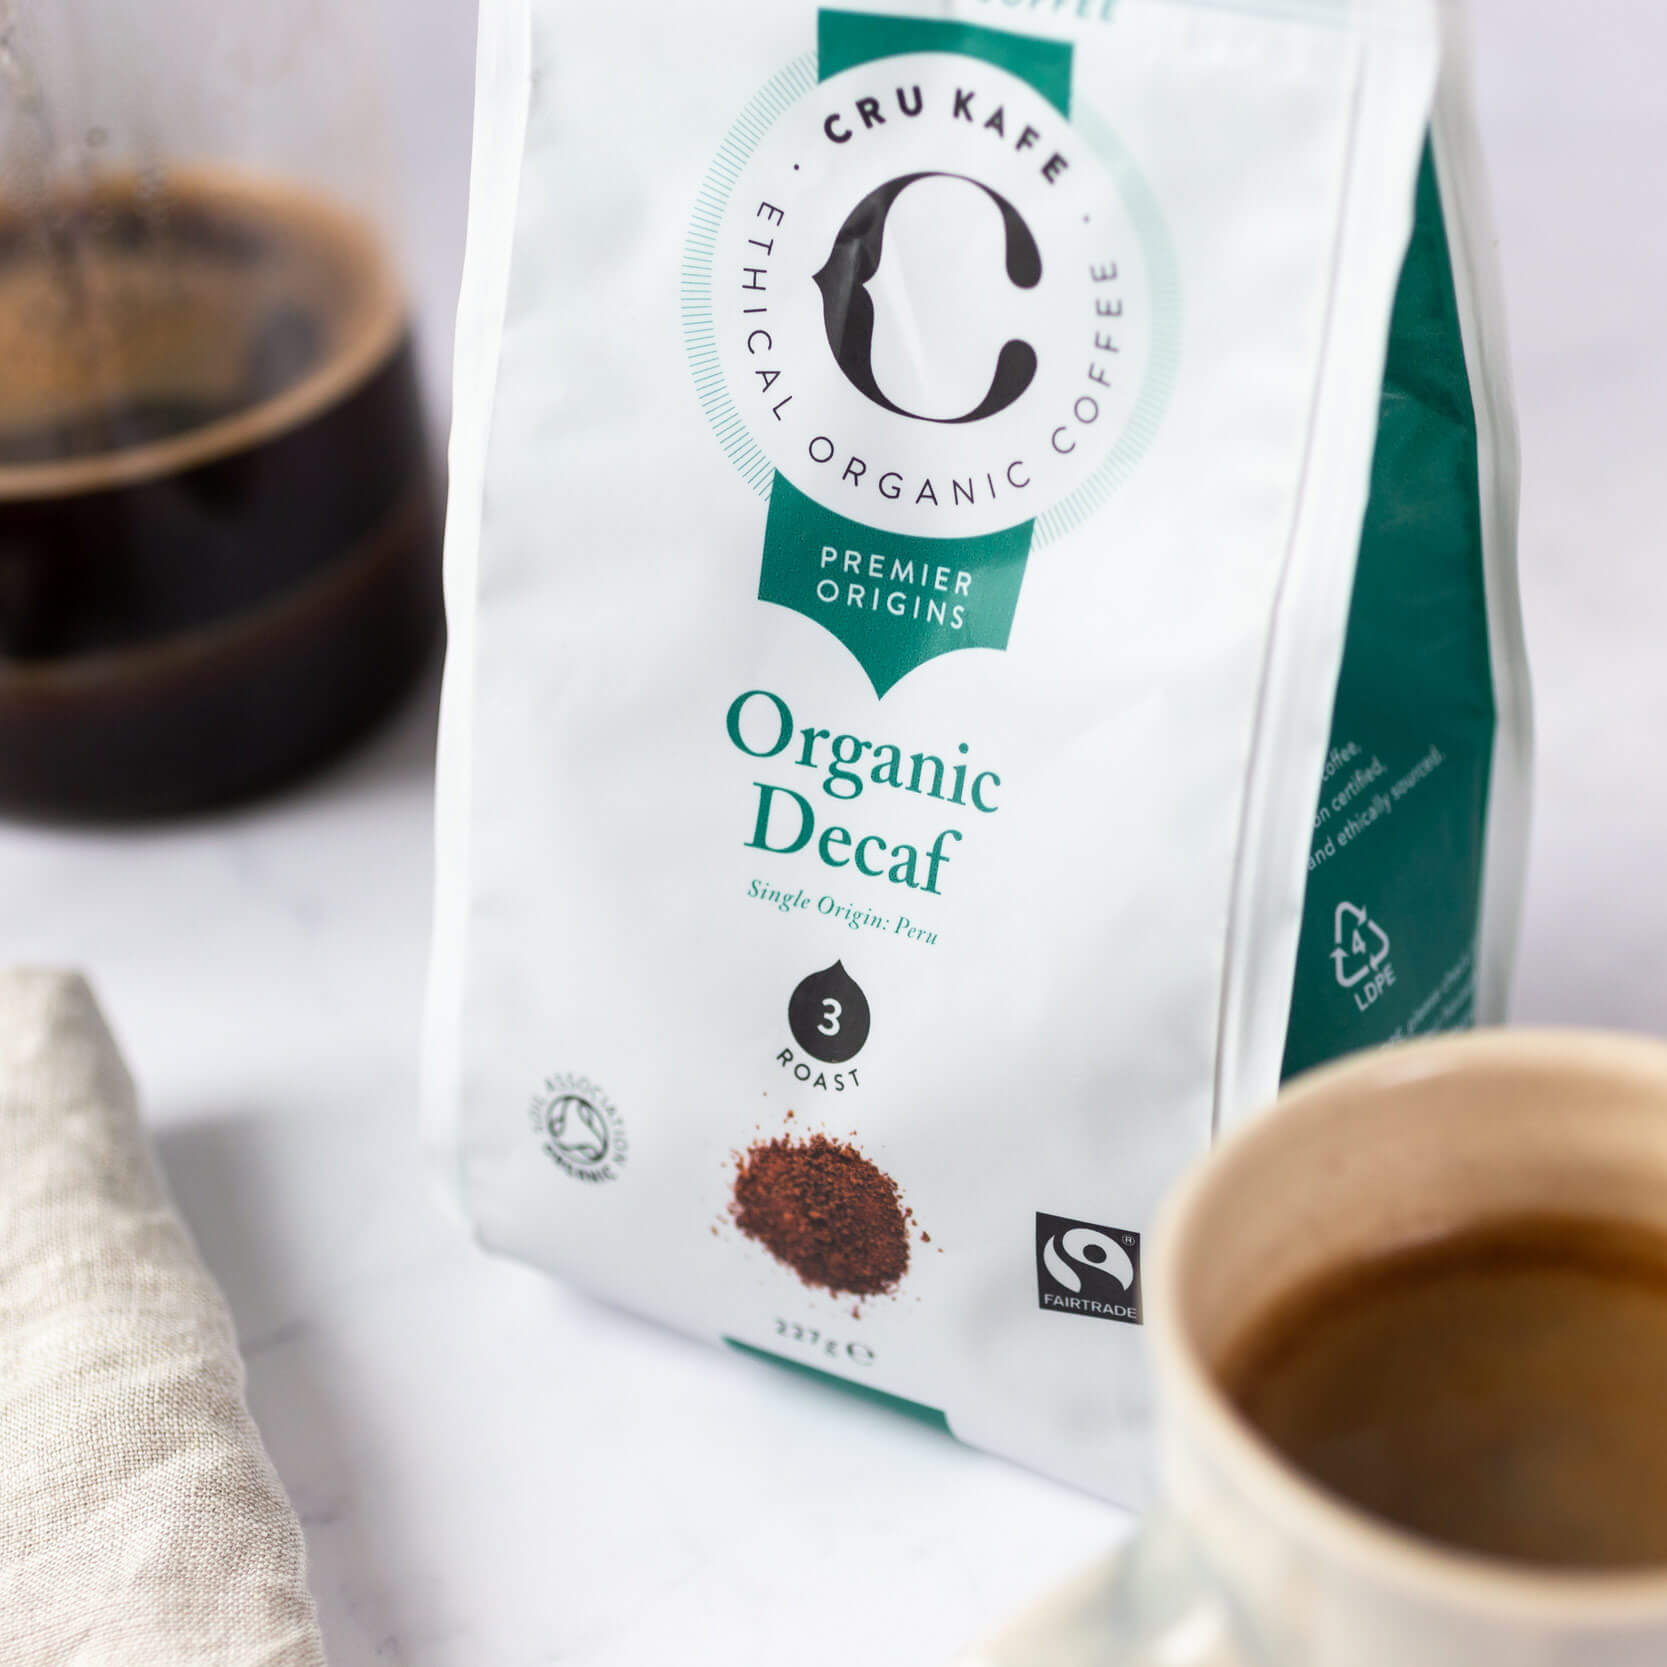 The Perfect Decaf...